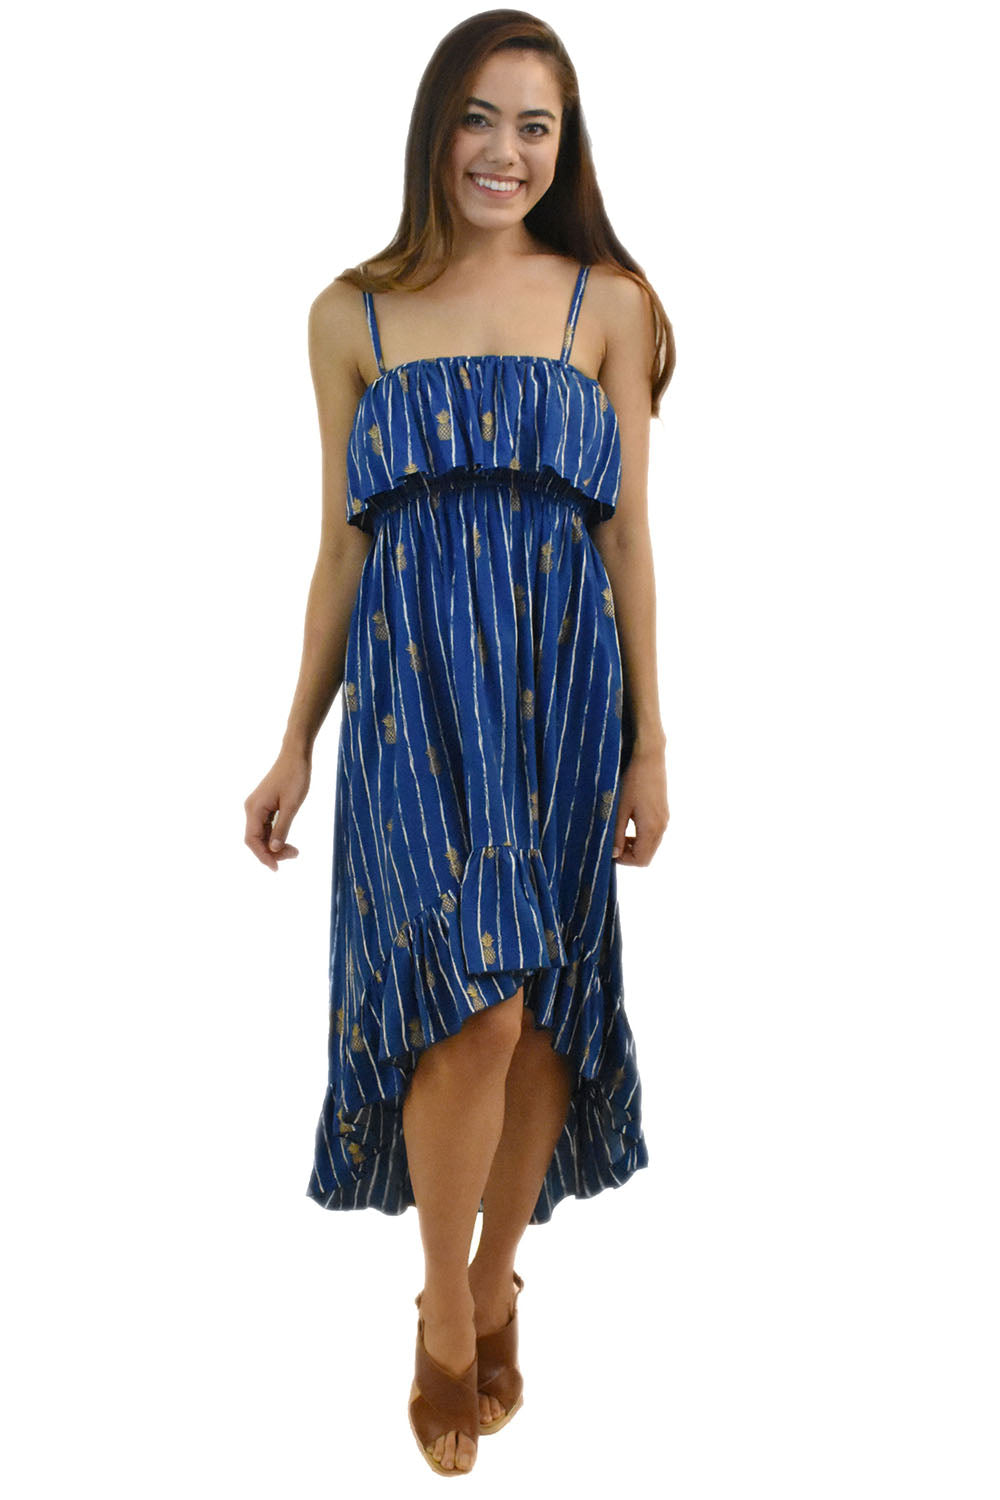 Lanikai Dress in Pineapple Print Navy